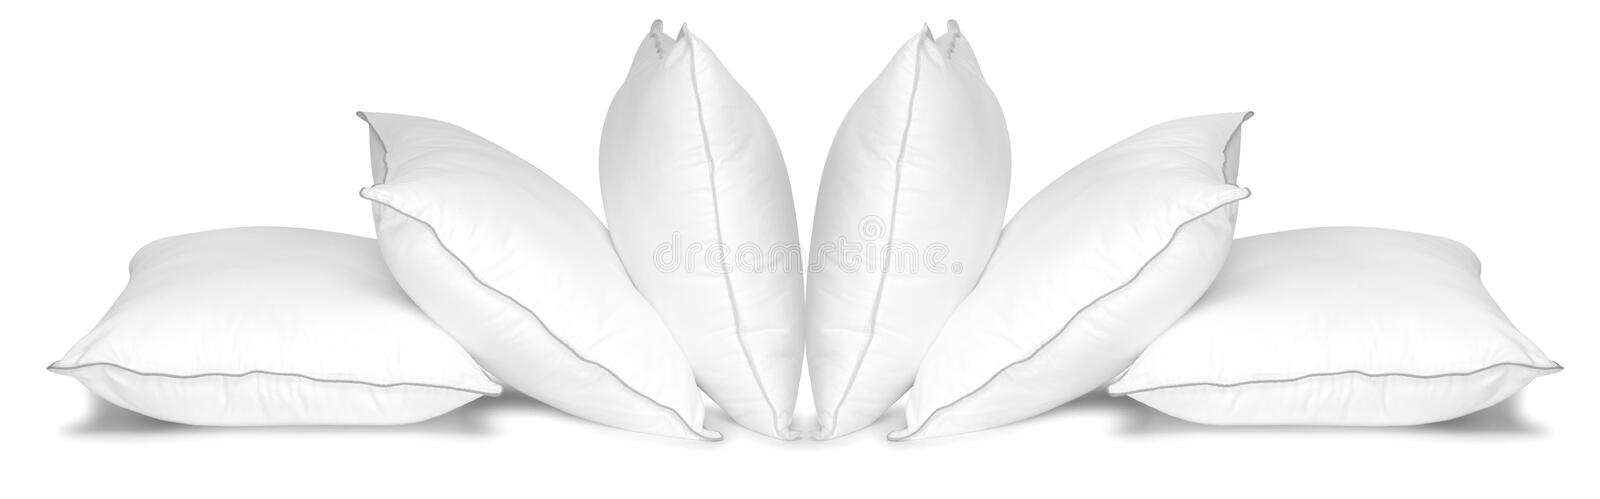 White pillows. Isolated stock photos